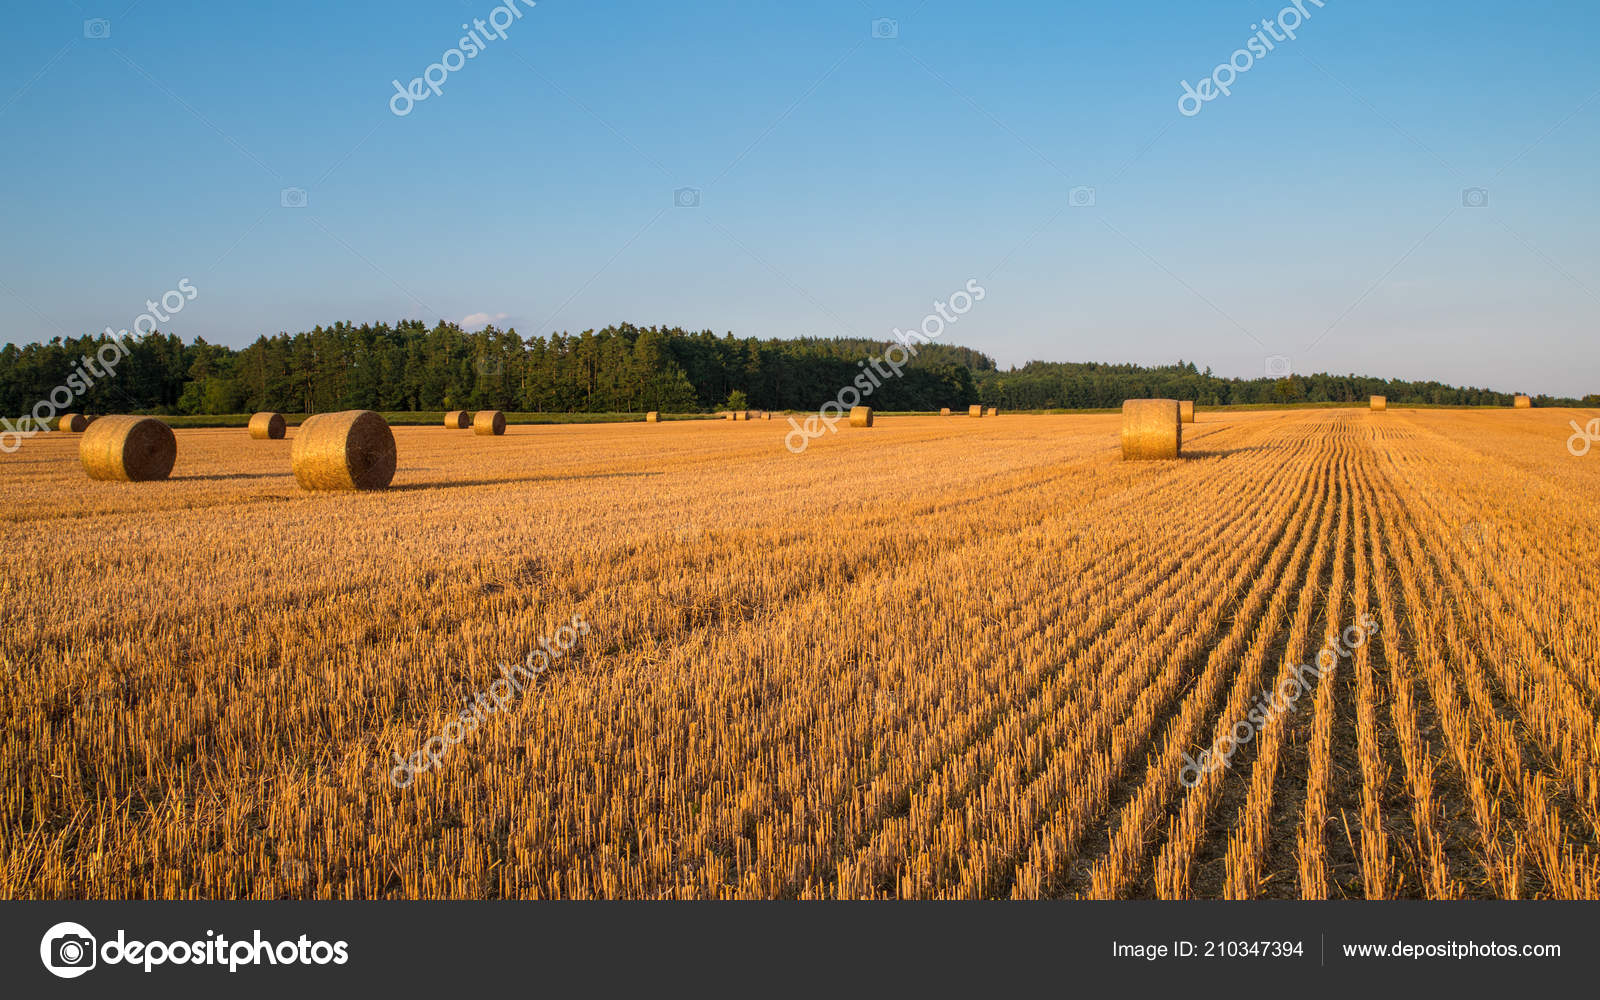 Sunlit Stubble Straw Bales Rural Landscape Golden Summer